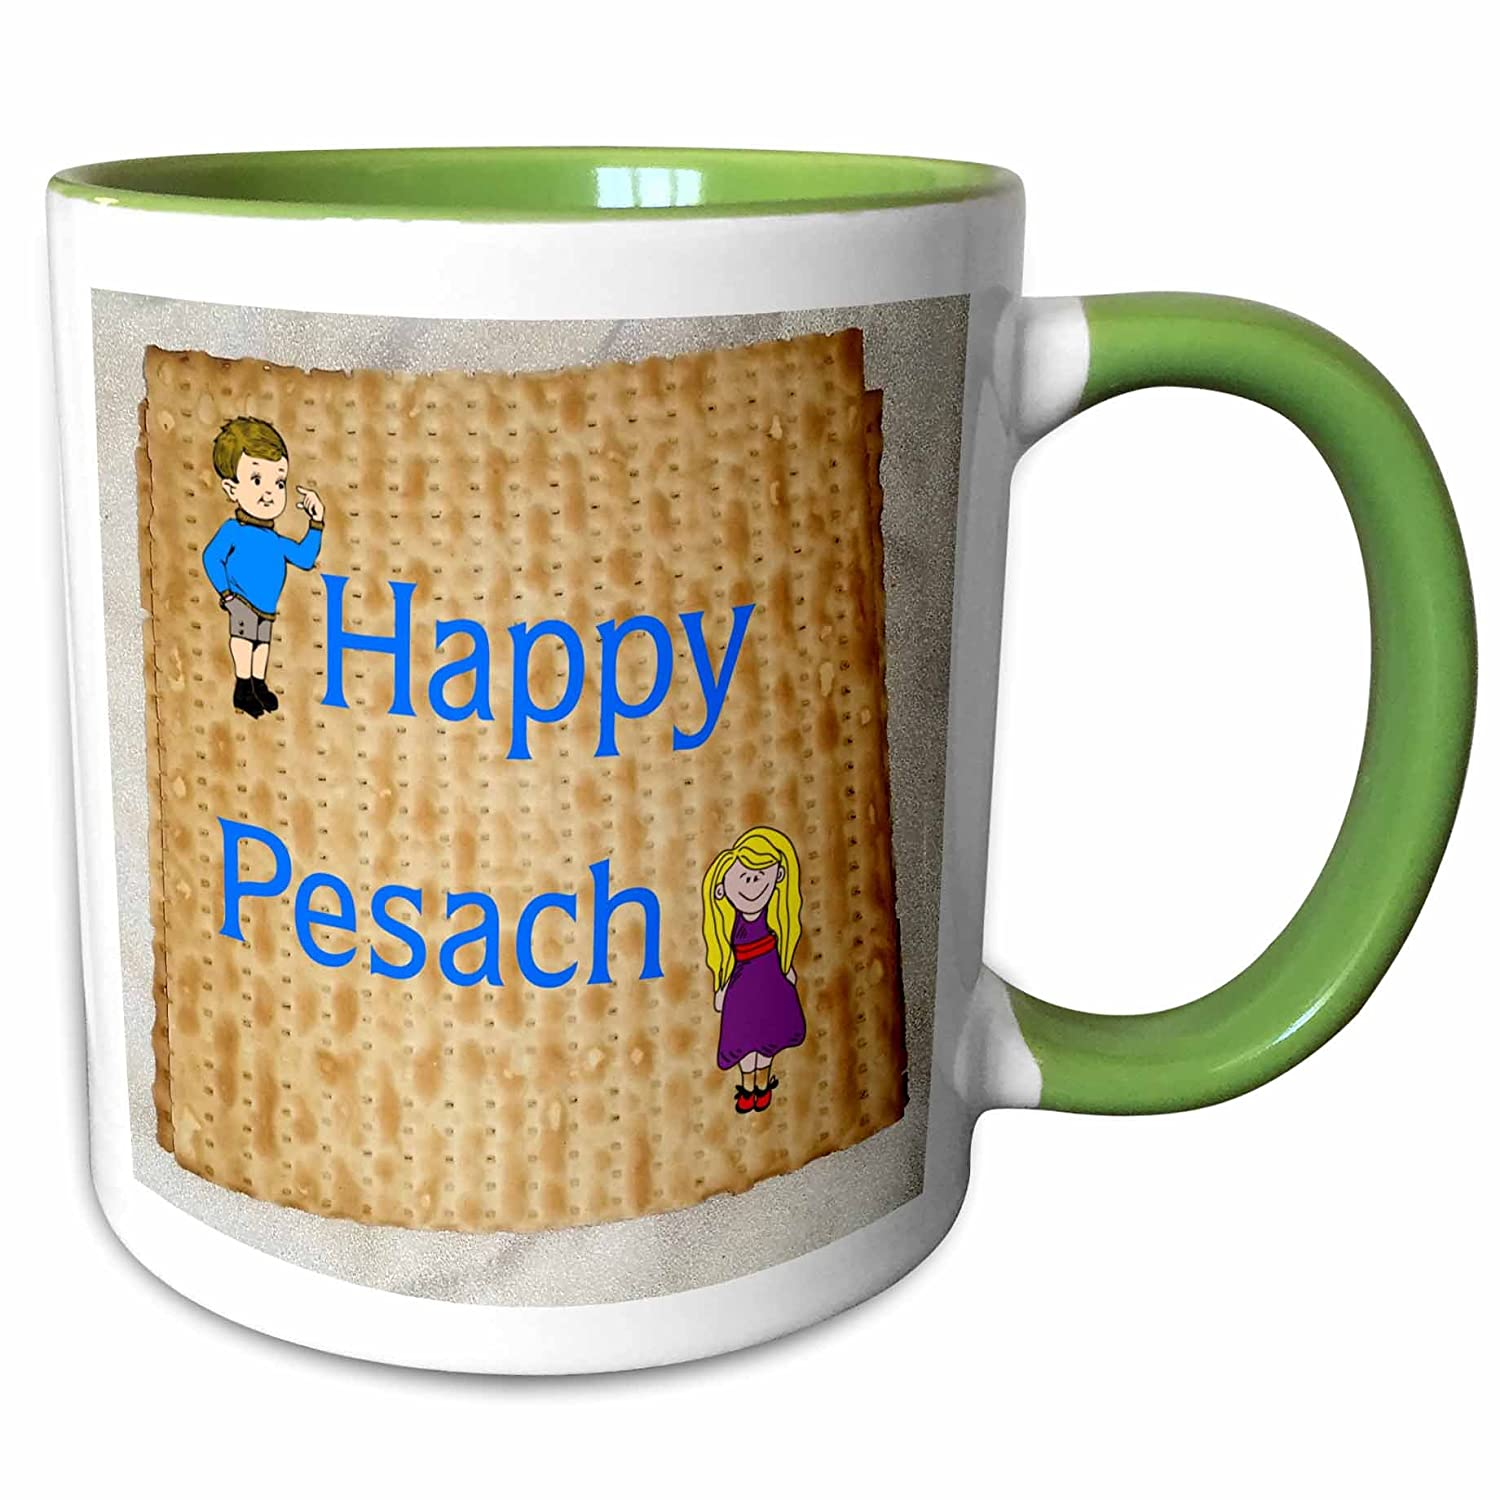 3dRose 235454/_7 Image of Happy Pesach with Boy And Girl On Matzoh Green Mug 11 oz